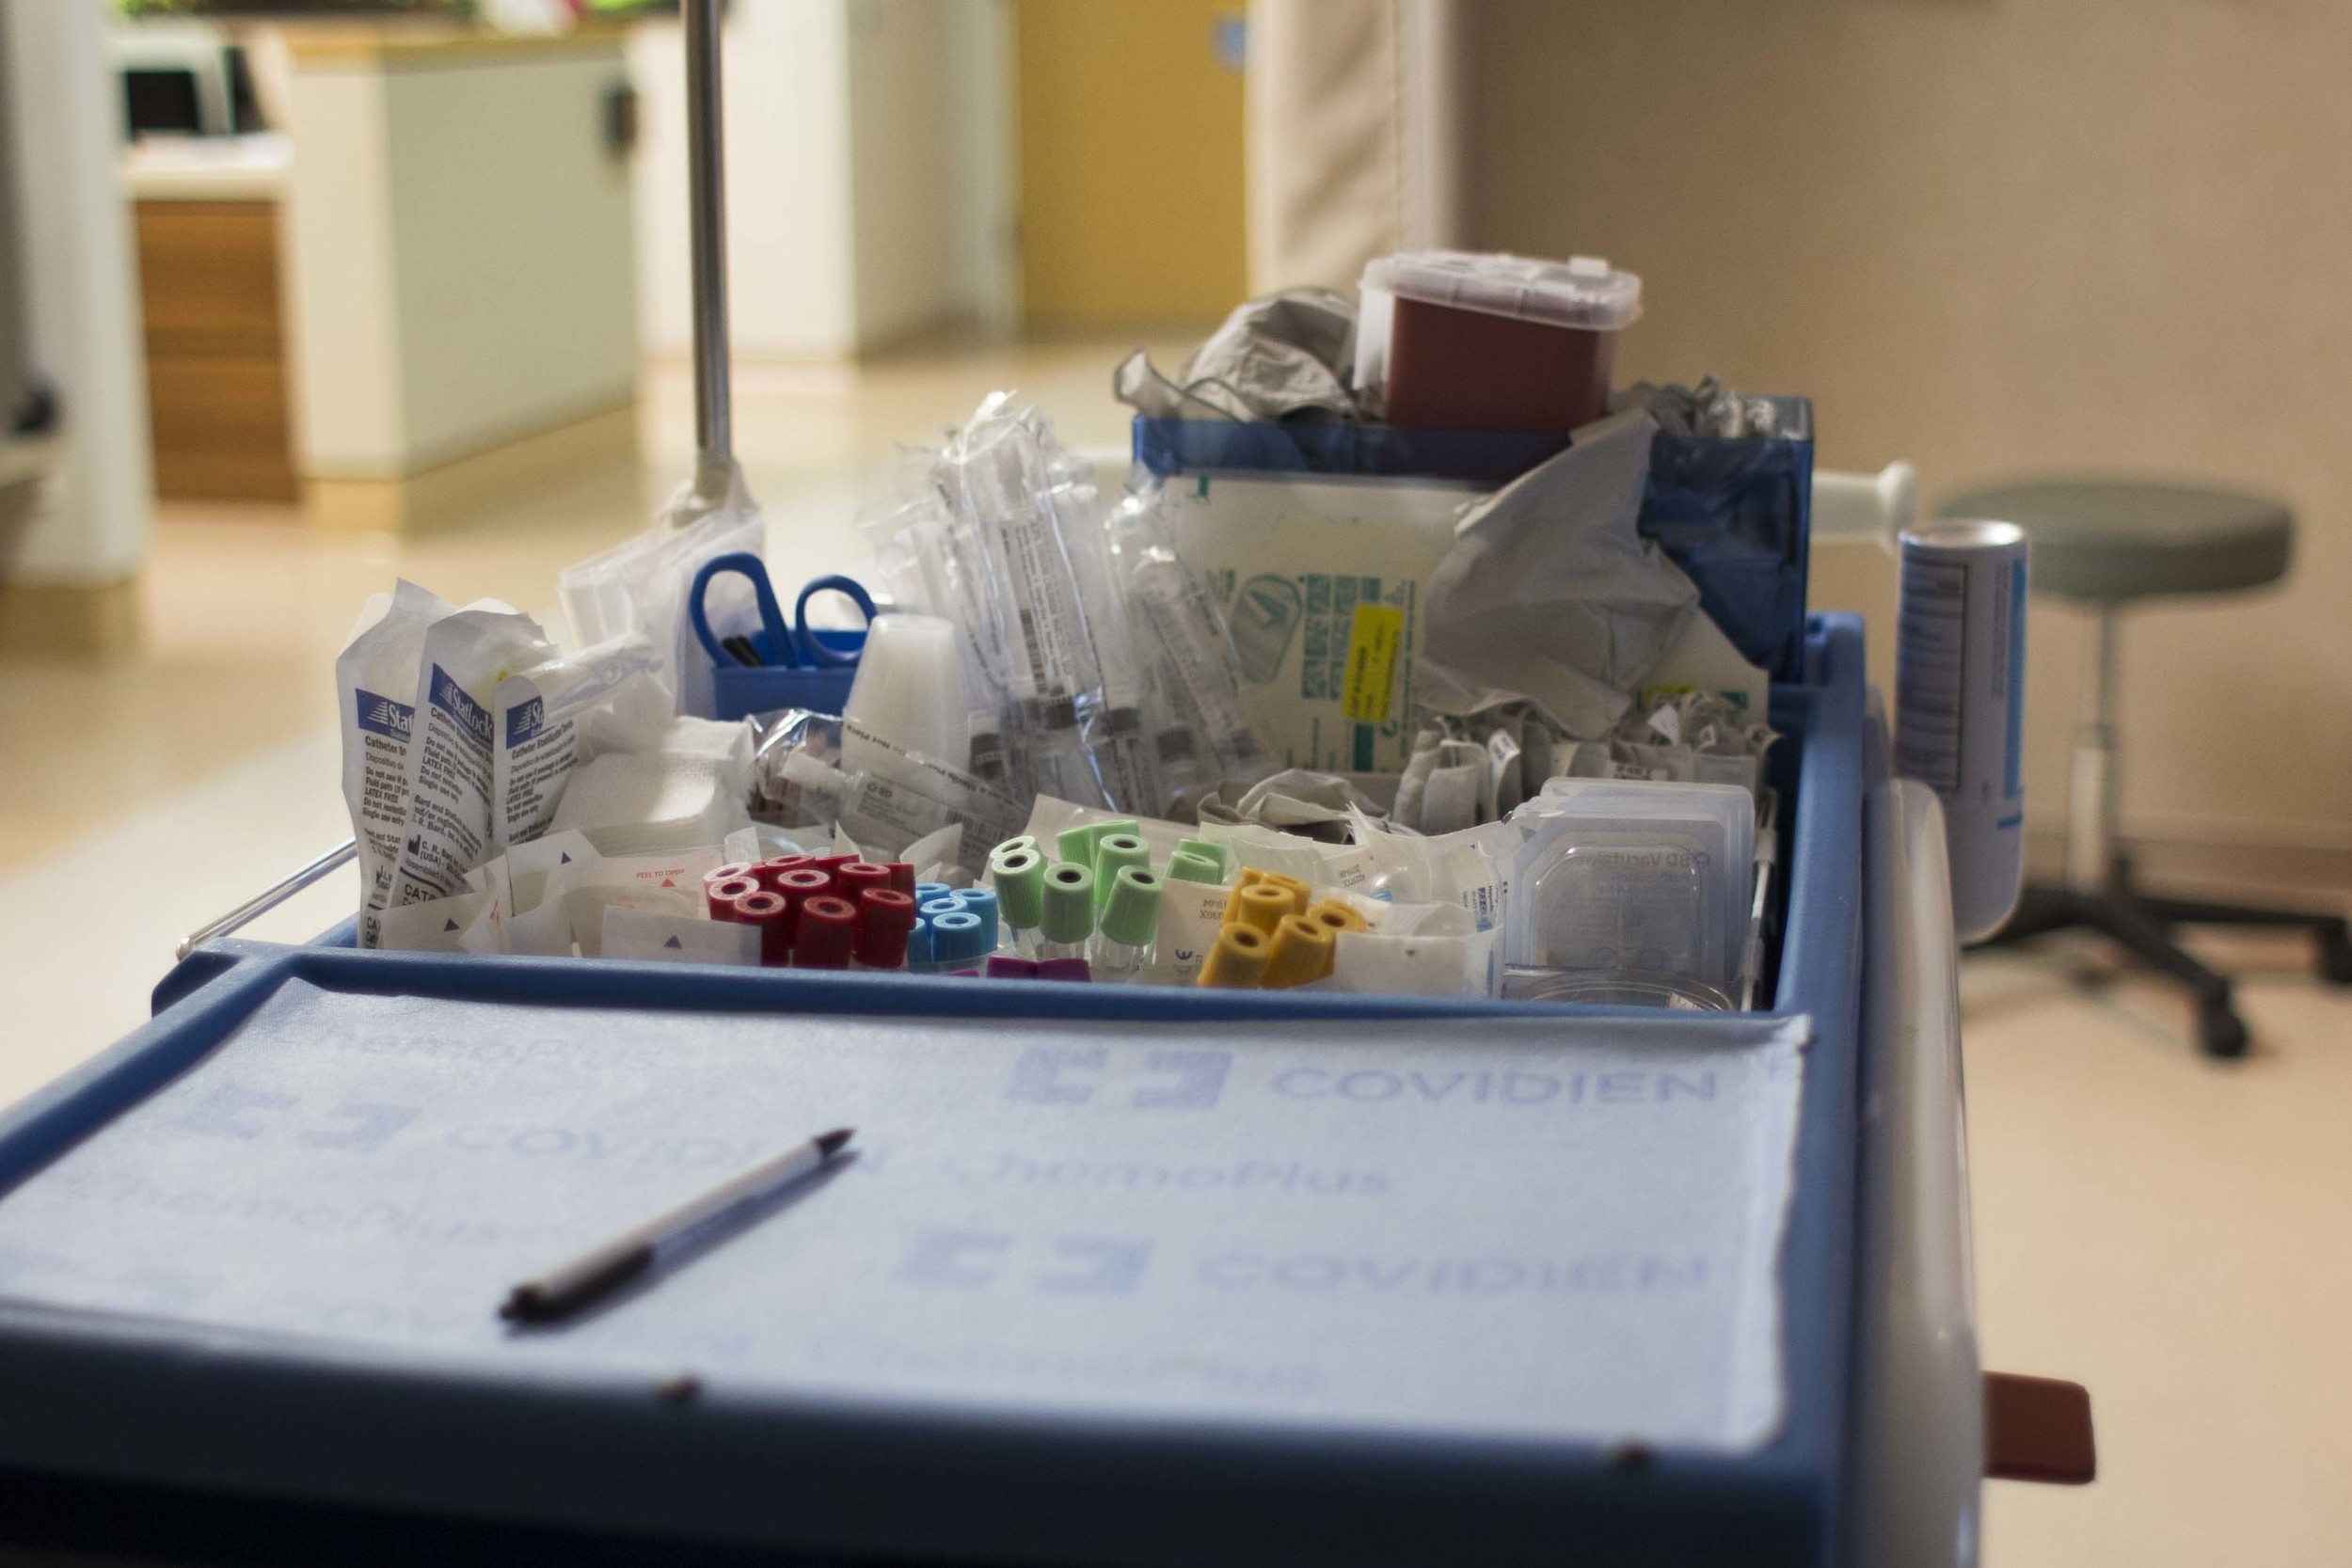 Medical supplies nearby